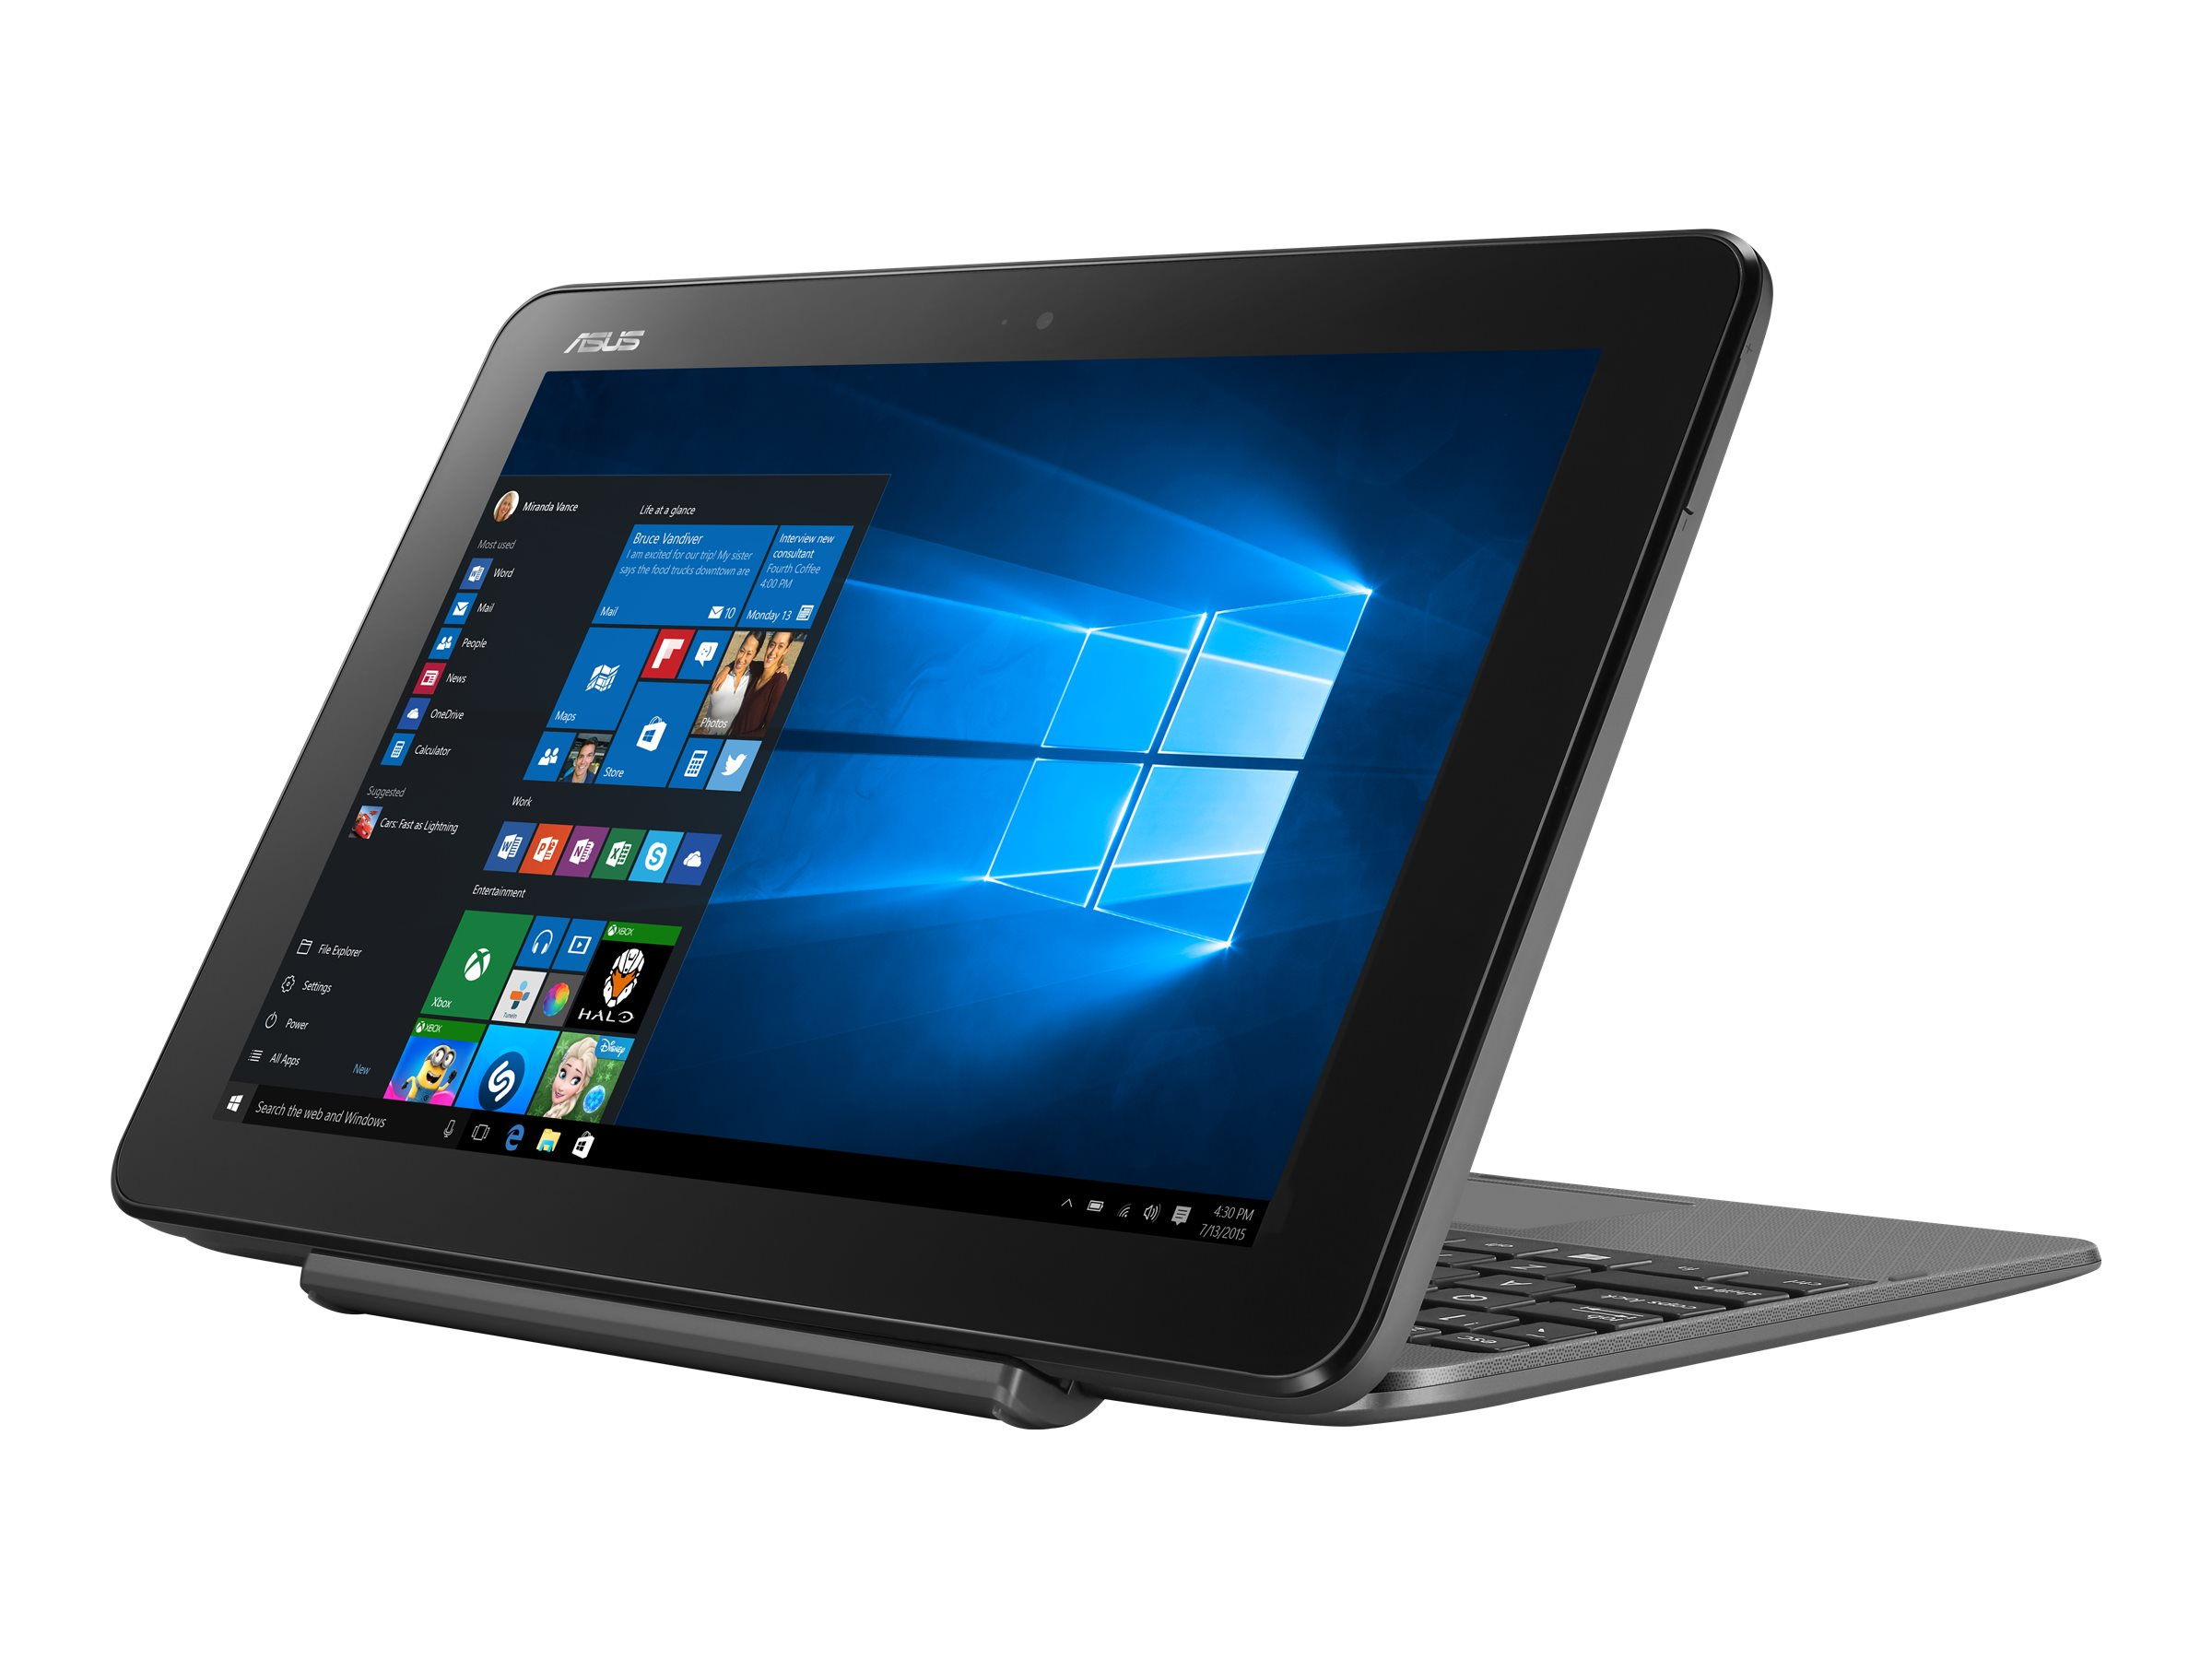 ASUS Transformer Book T101HA GR029R - Tablet - mit Tastatur-Dock - Atom x5 Z8350 / 1.44 GHz - Win 10 Pro 64-Bit - 4 GB RAM